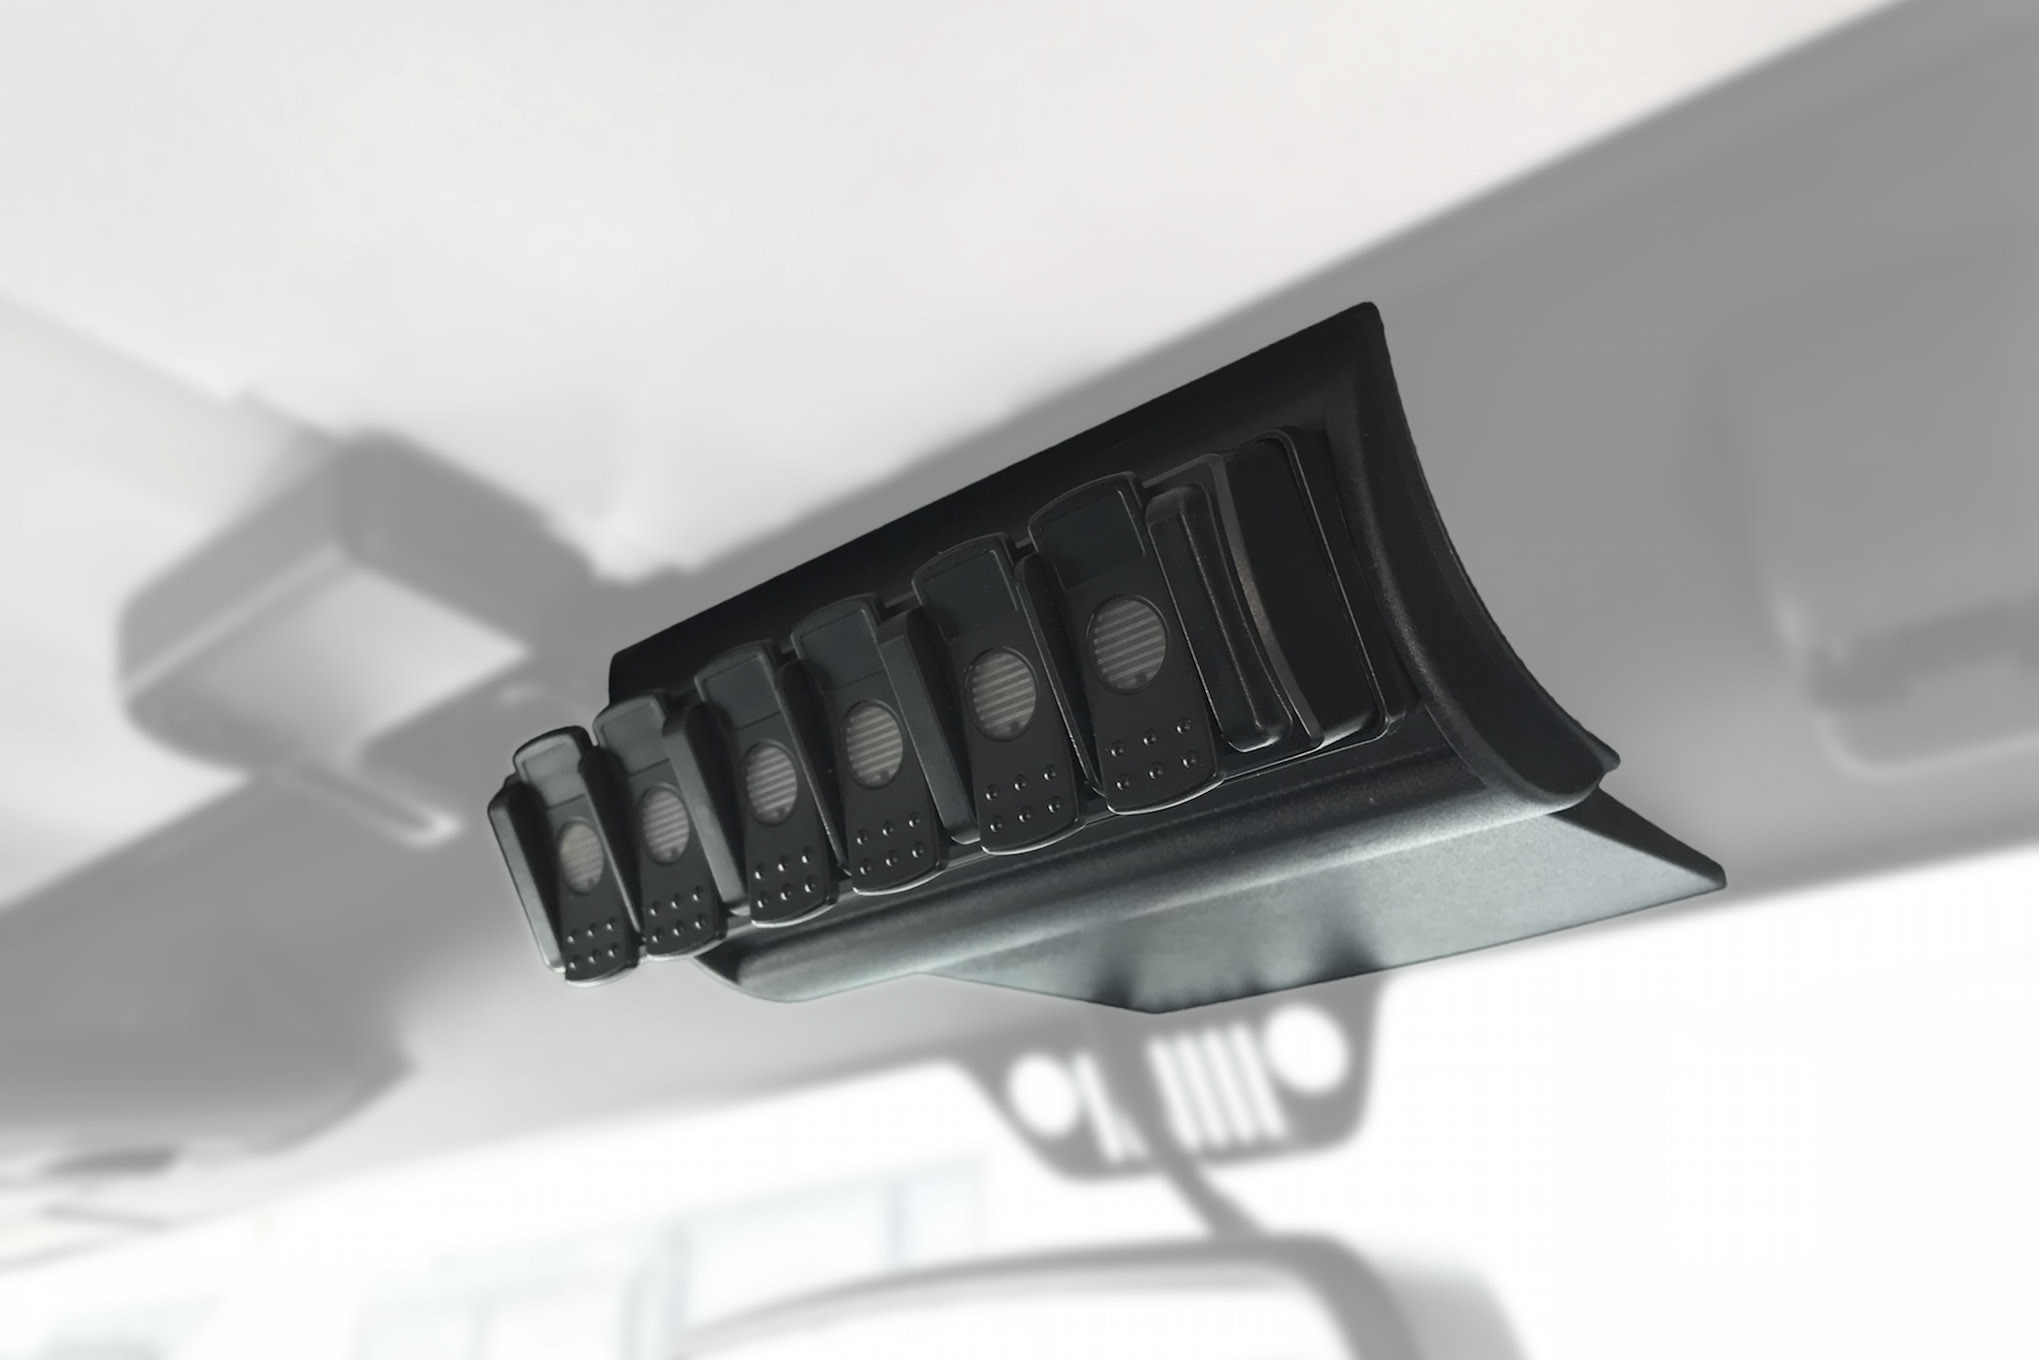 002 new products trigger jeep jk jl overhead console switch panel controller light six shooter